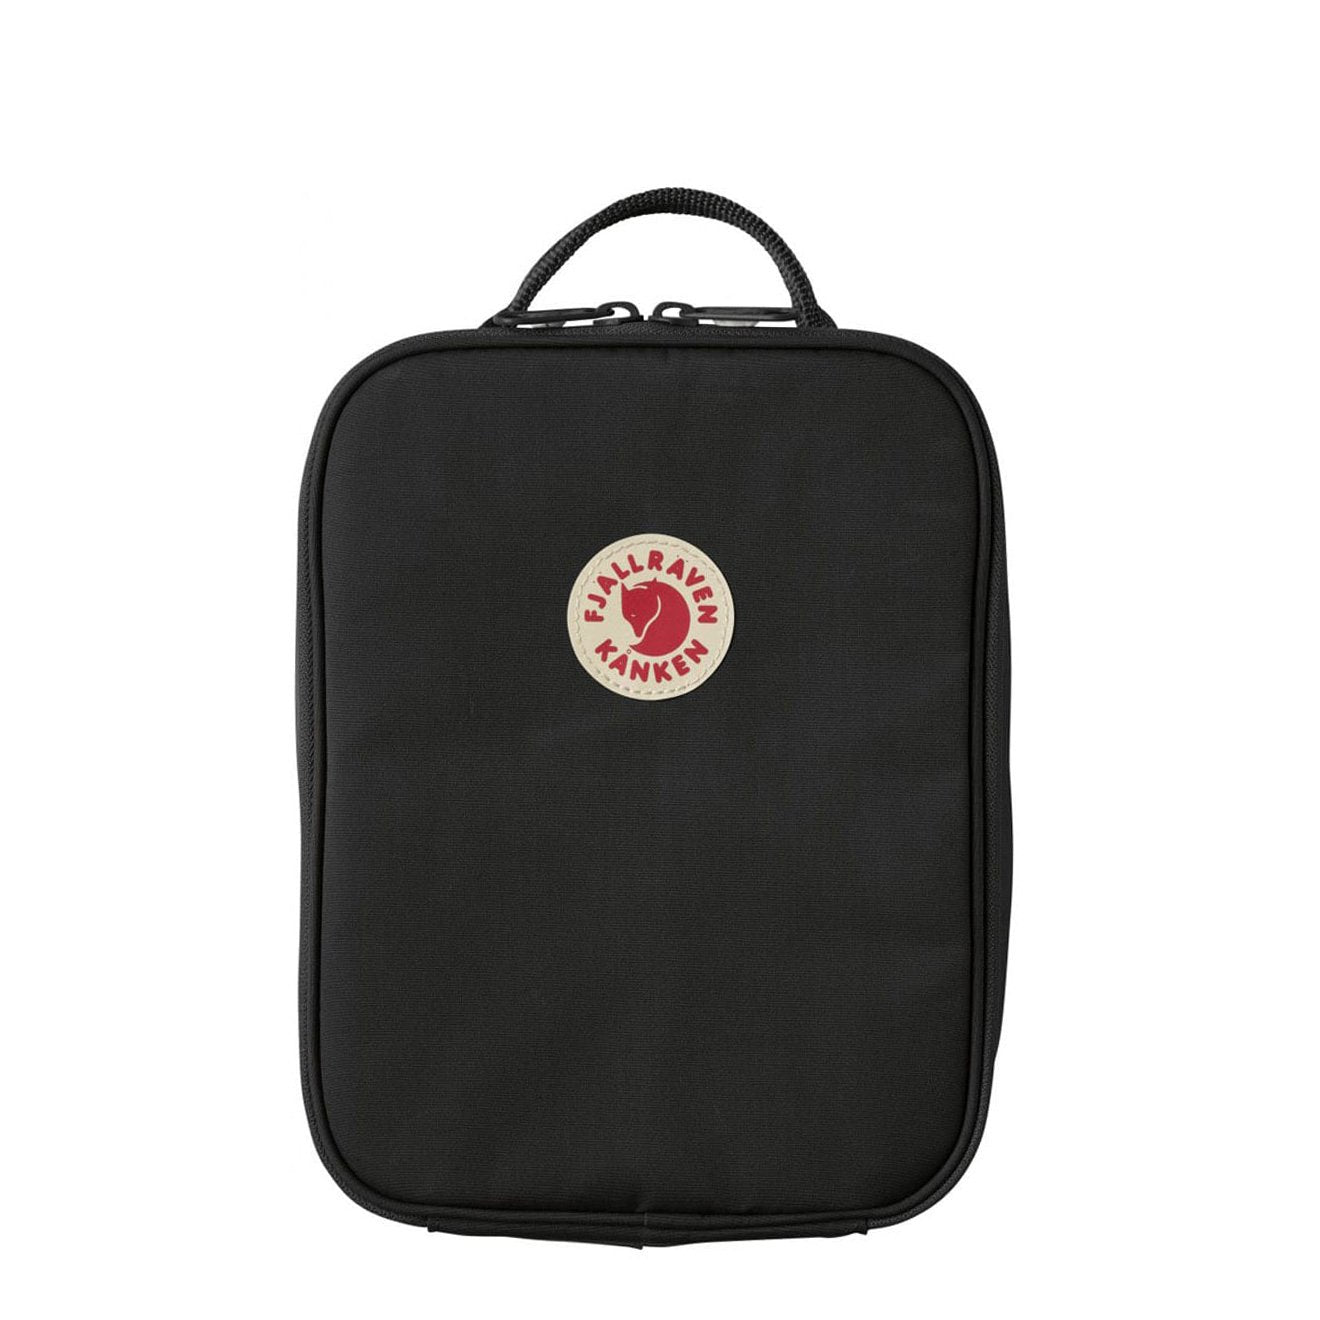 Fjallraven Kanken Mini Cooler Lunch Bag Black